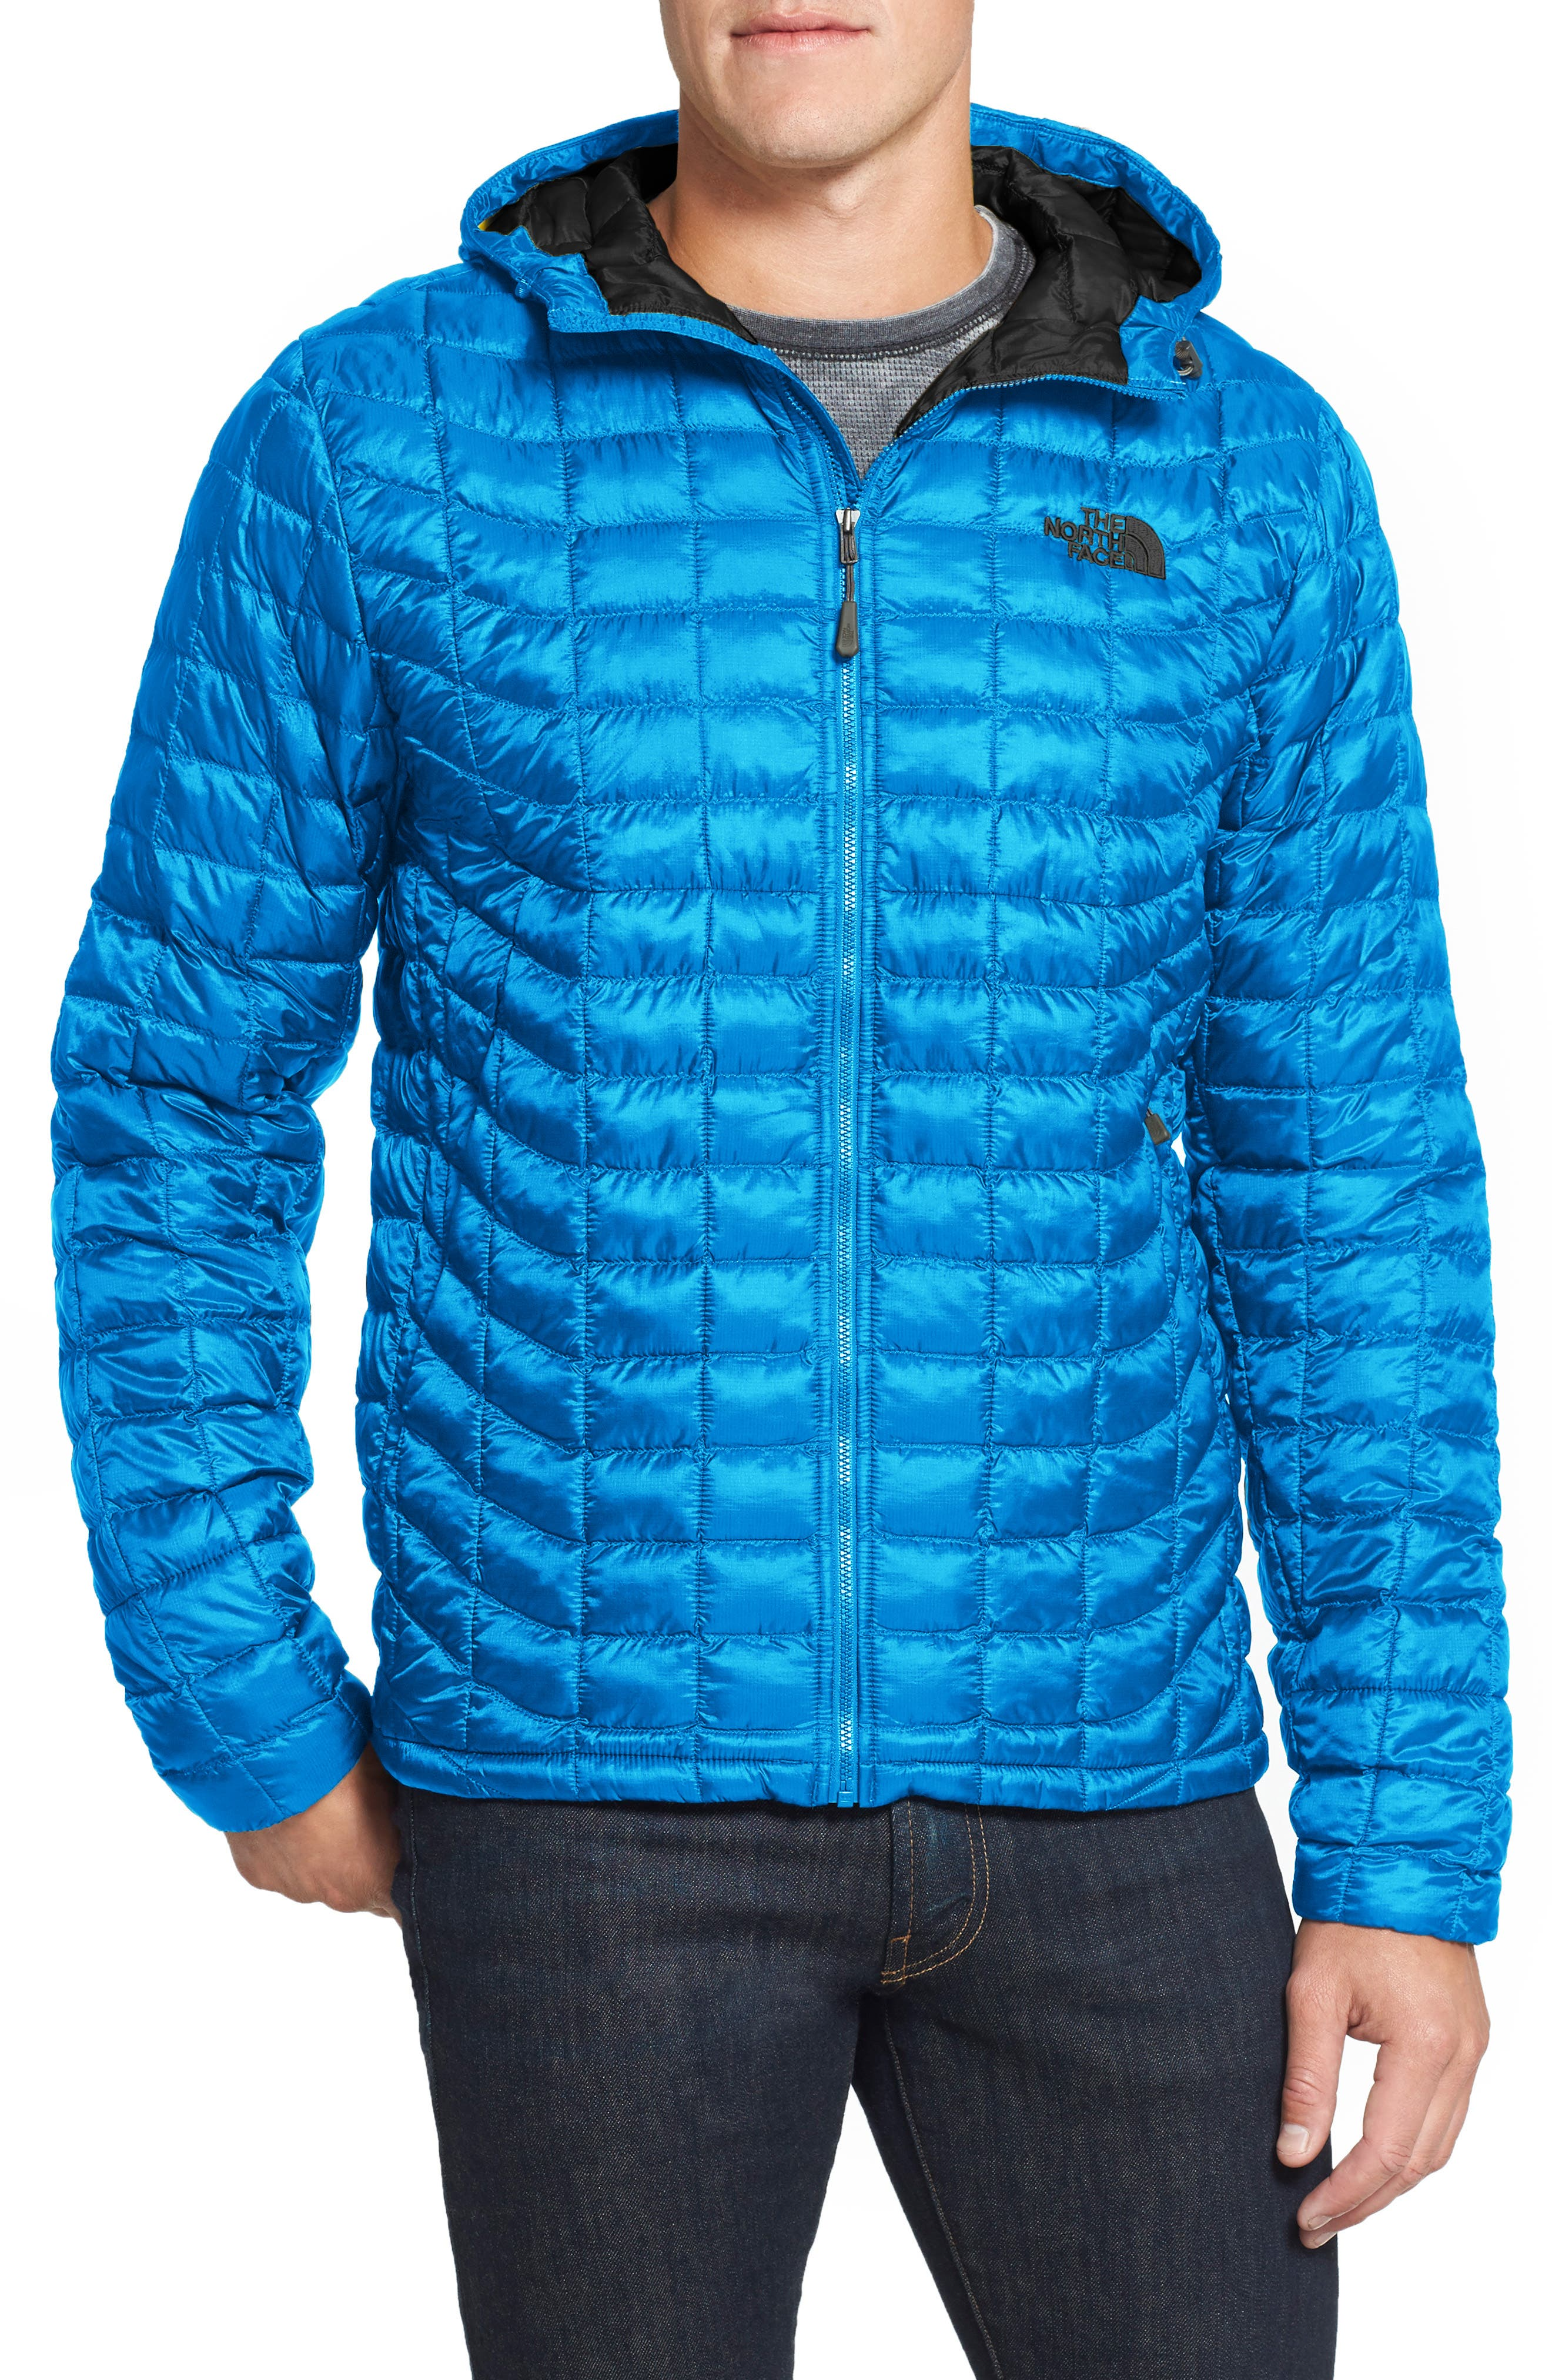 Alternate Image 1 Selected - The North Face 'ThermoBall™' PrimaLoft® Hoodie Jacket